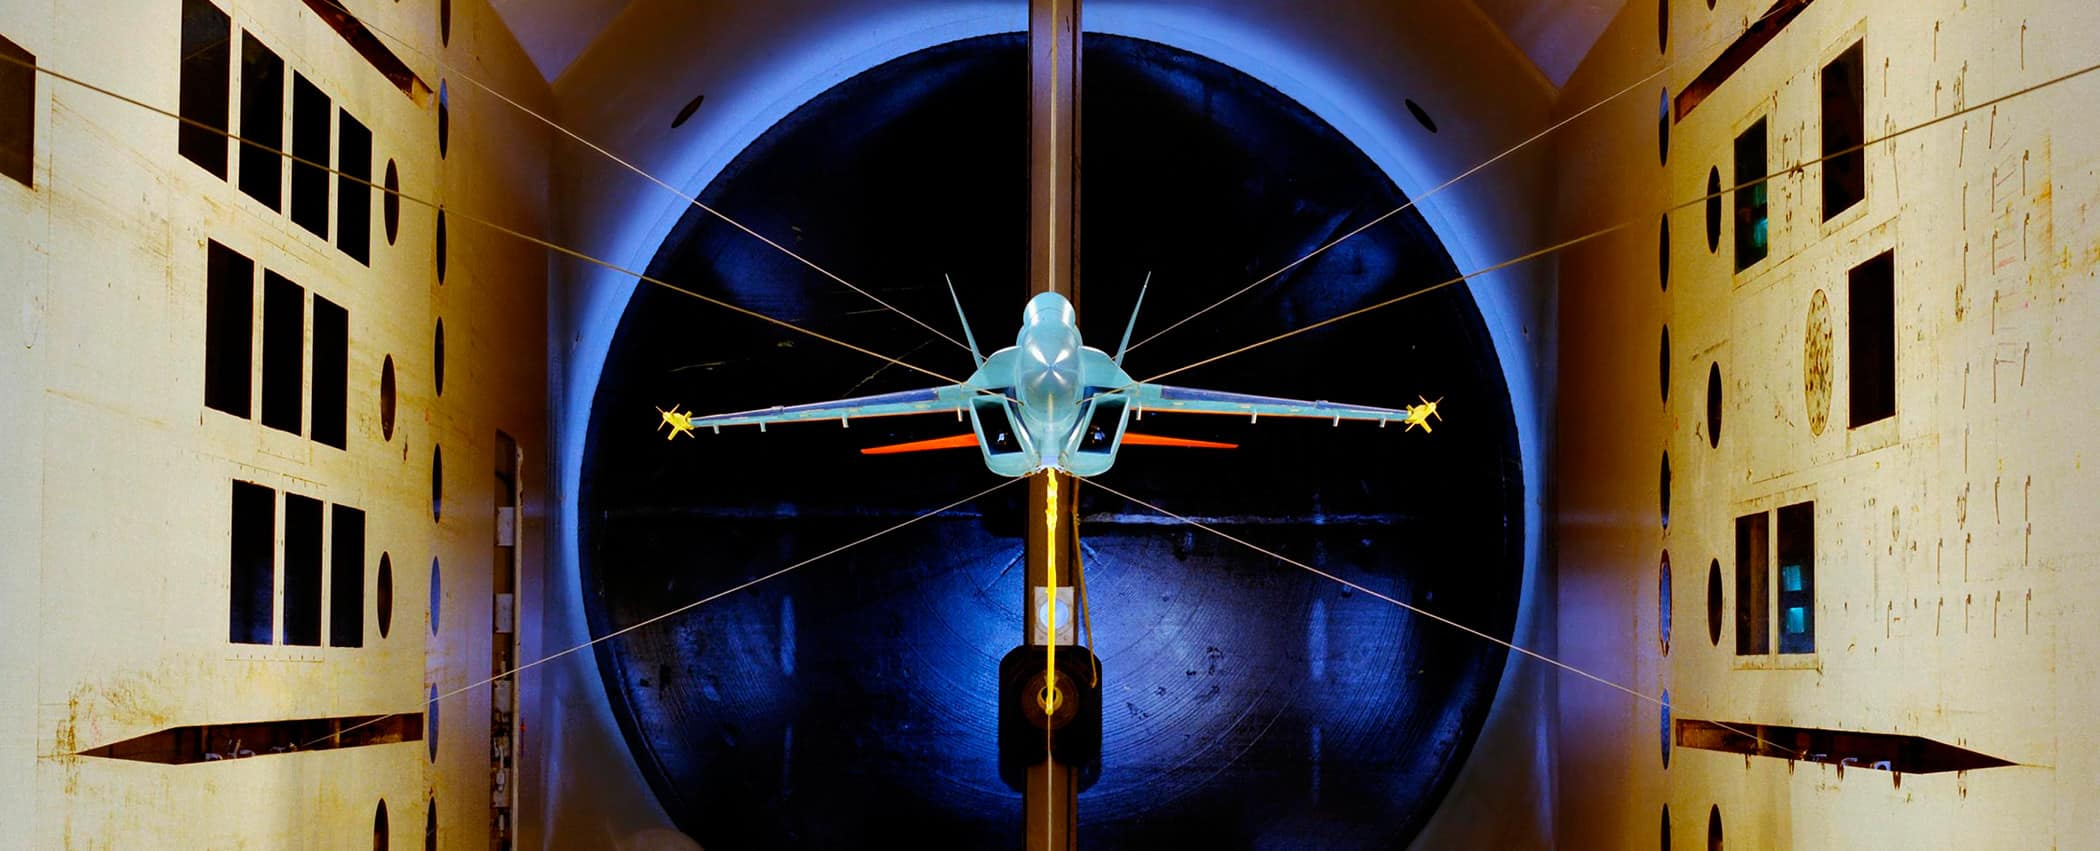 about aerospace engineering Review online aerospace engineering graduate programs on gradschoolscom, the #1 site for online aerospace engineering degrees from accredited colleges & universities.